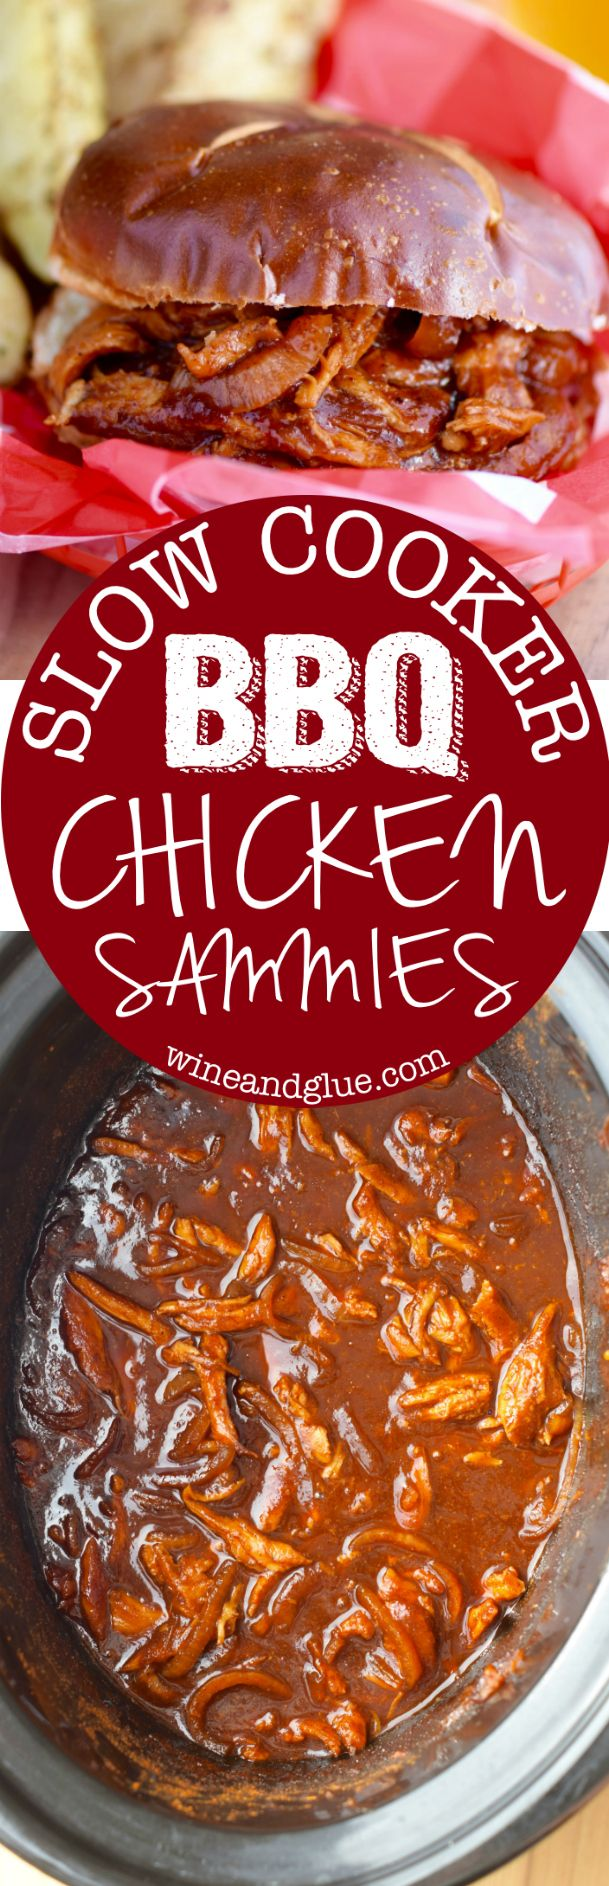 This Slow Cooker BBQ Chicken is super easy to whip up but so yummy, tender and delicious, making it a perfect weeknight dinner!